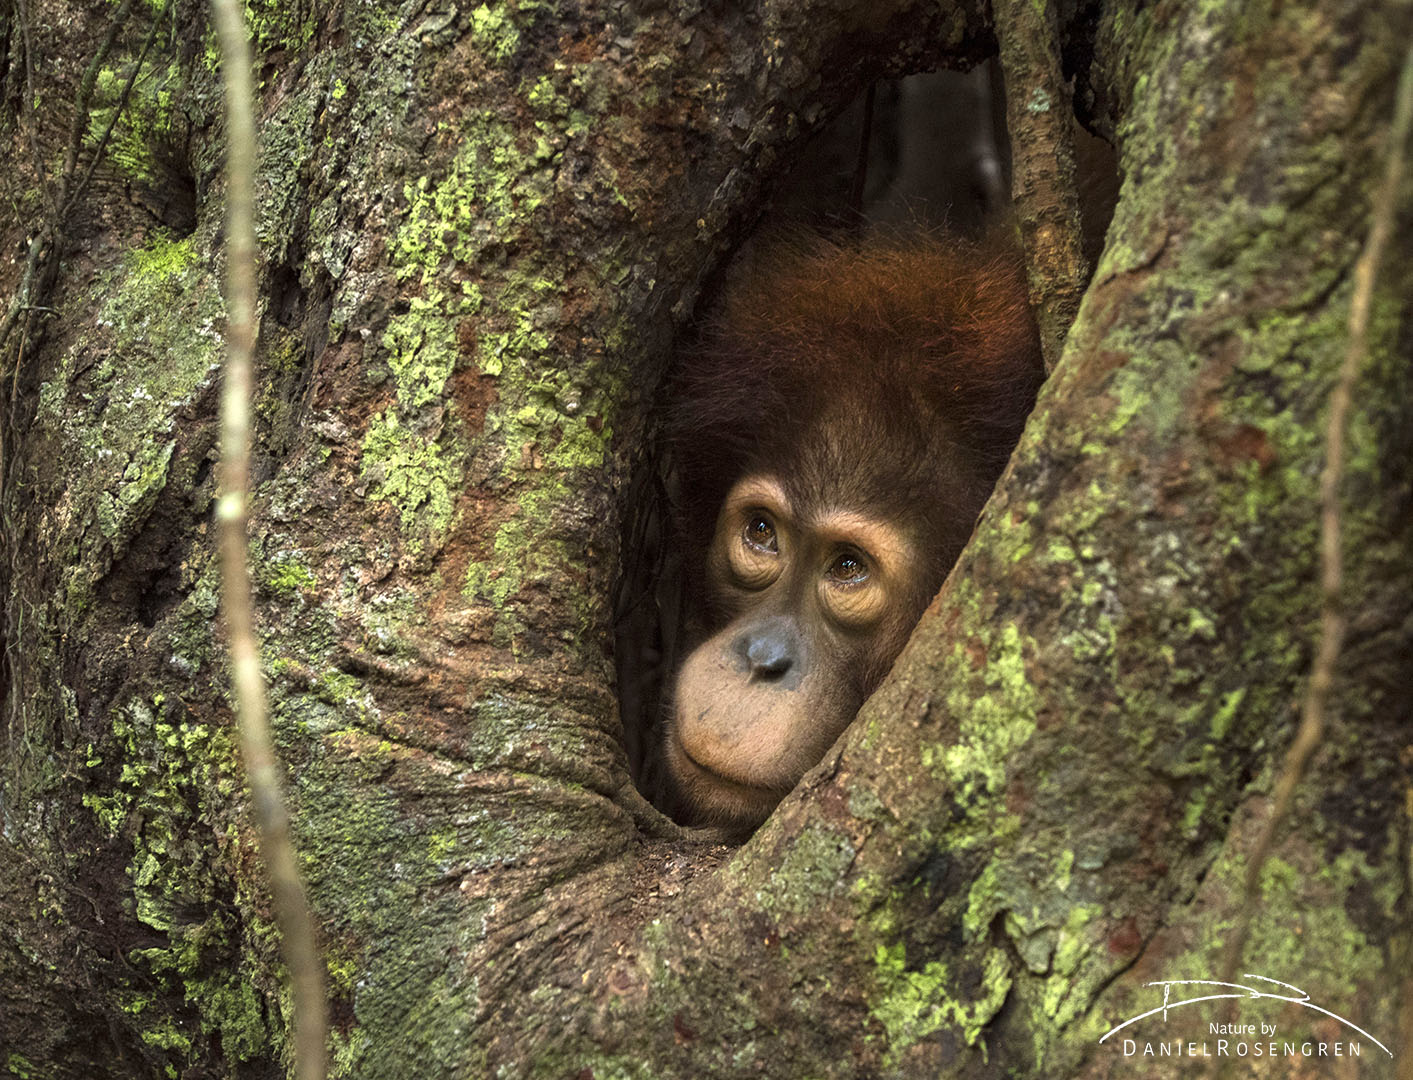 A strangler fig is a great play-ground for a young Orang-utan. © Daniel Rosengren